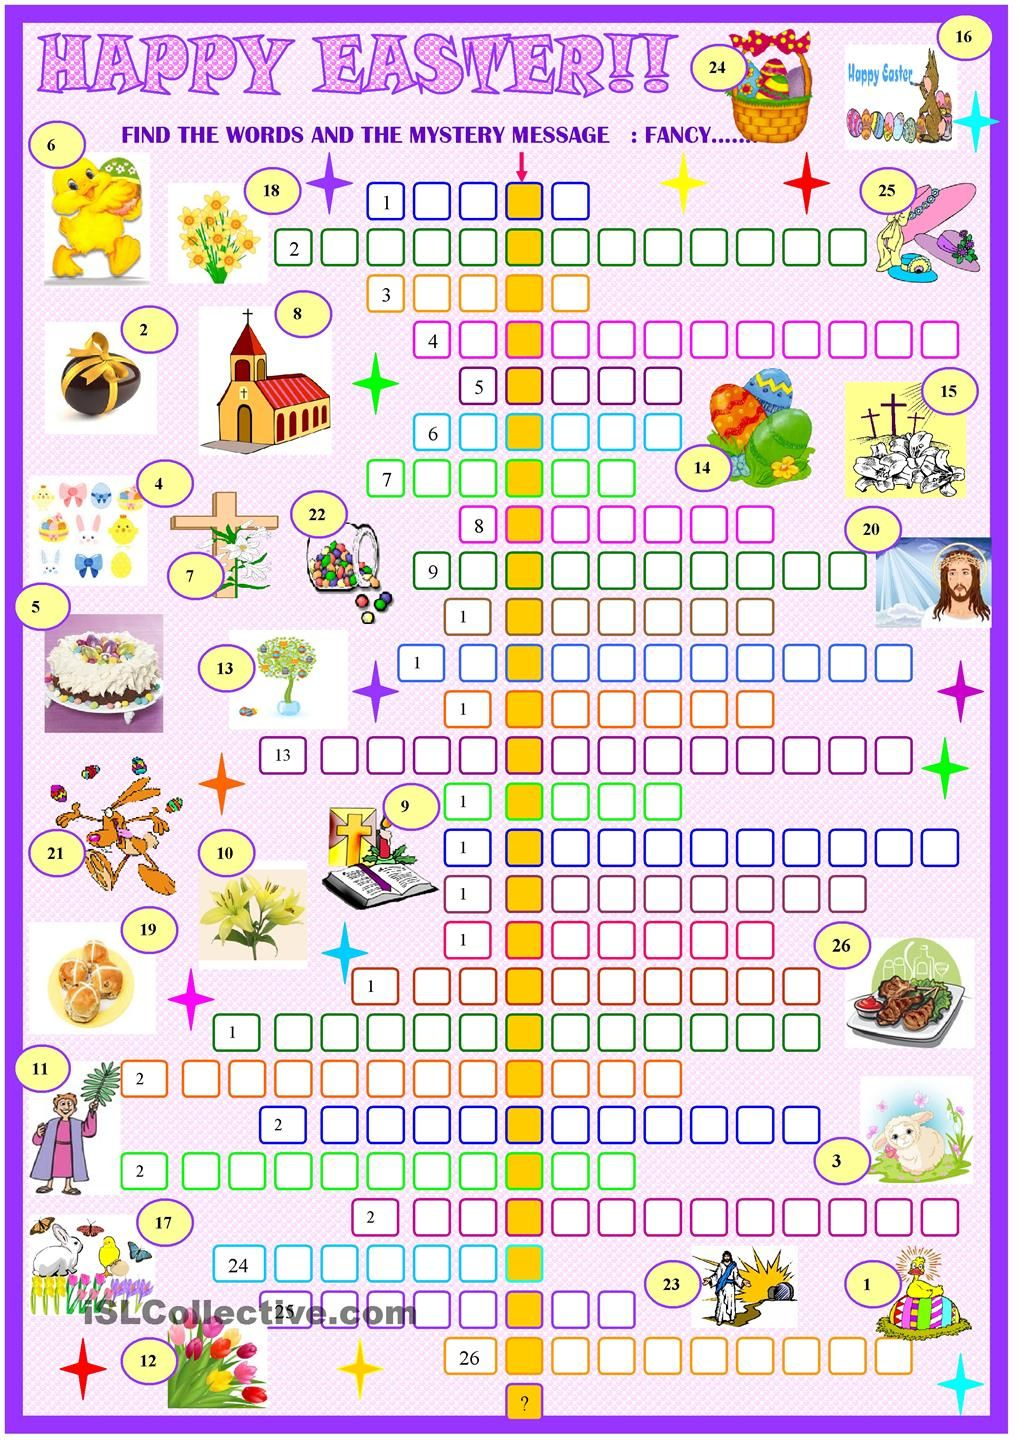 Easter:crossword Puzzle. Esl Worksheet Of The Day - Easter Crossword Puzzle Printable Worksheets